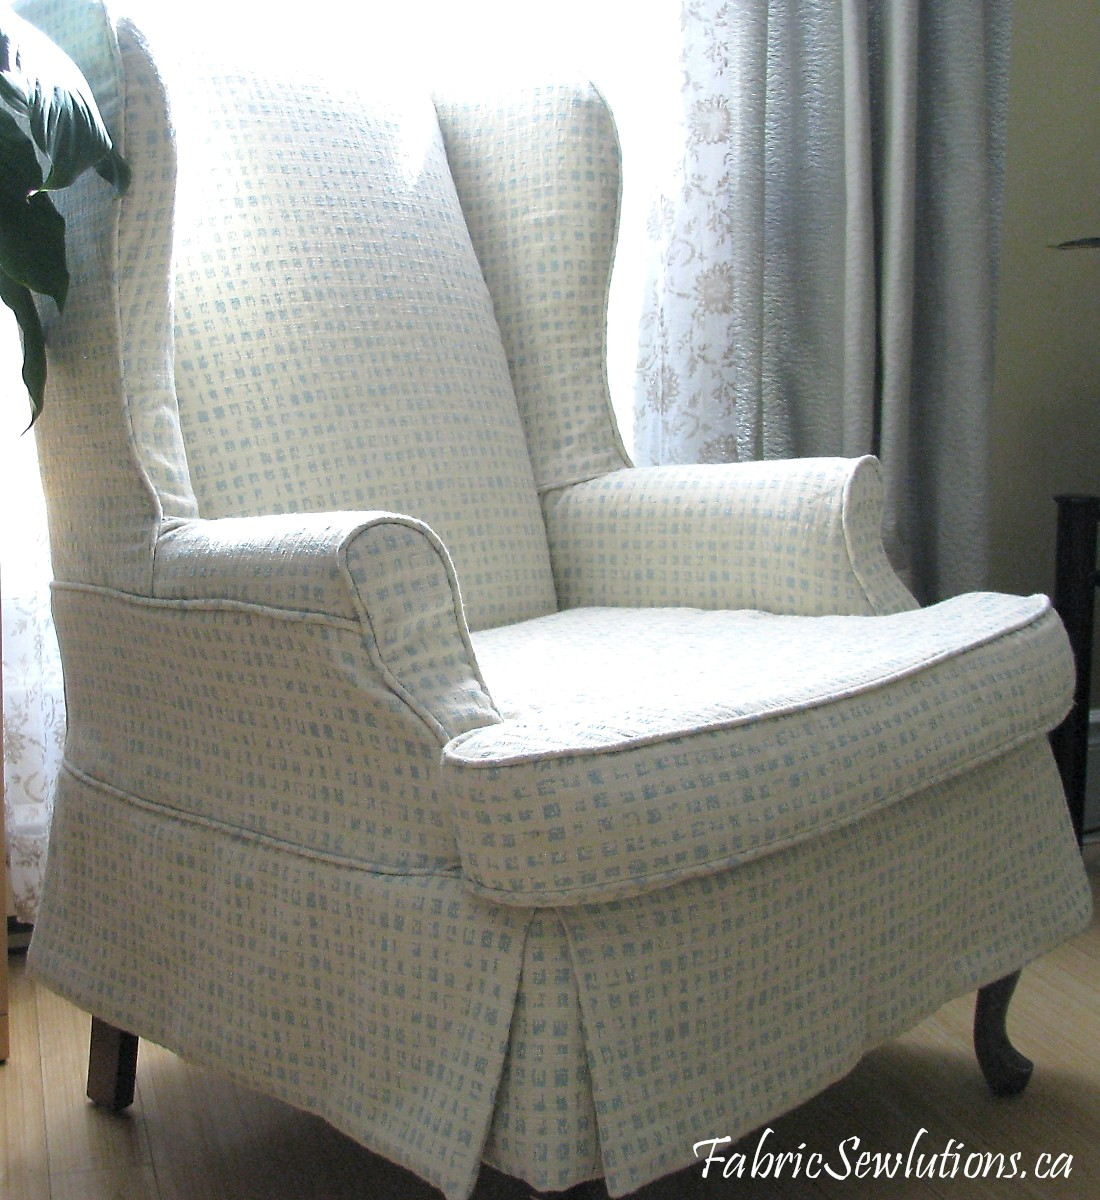 floral slipcovers for wingback chairs | Sewlutions' World: Wingback Chair Slipcover